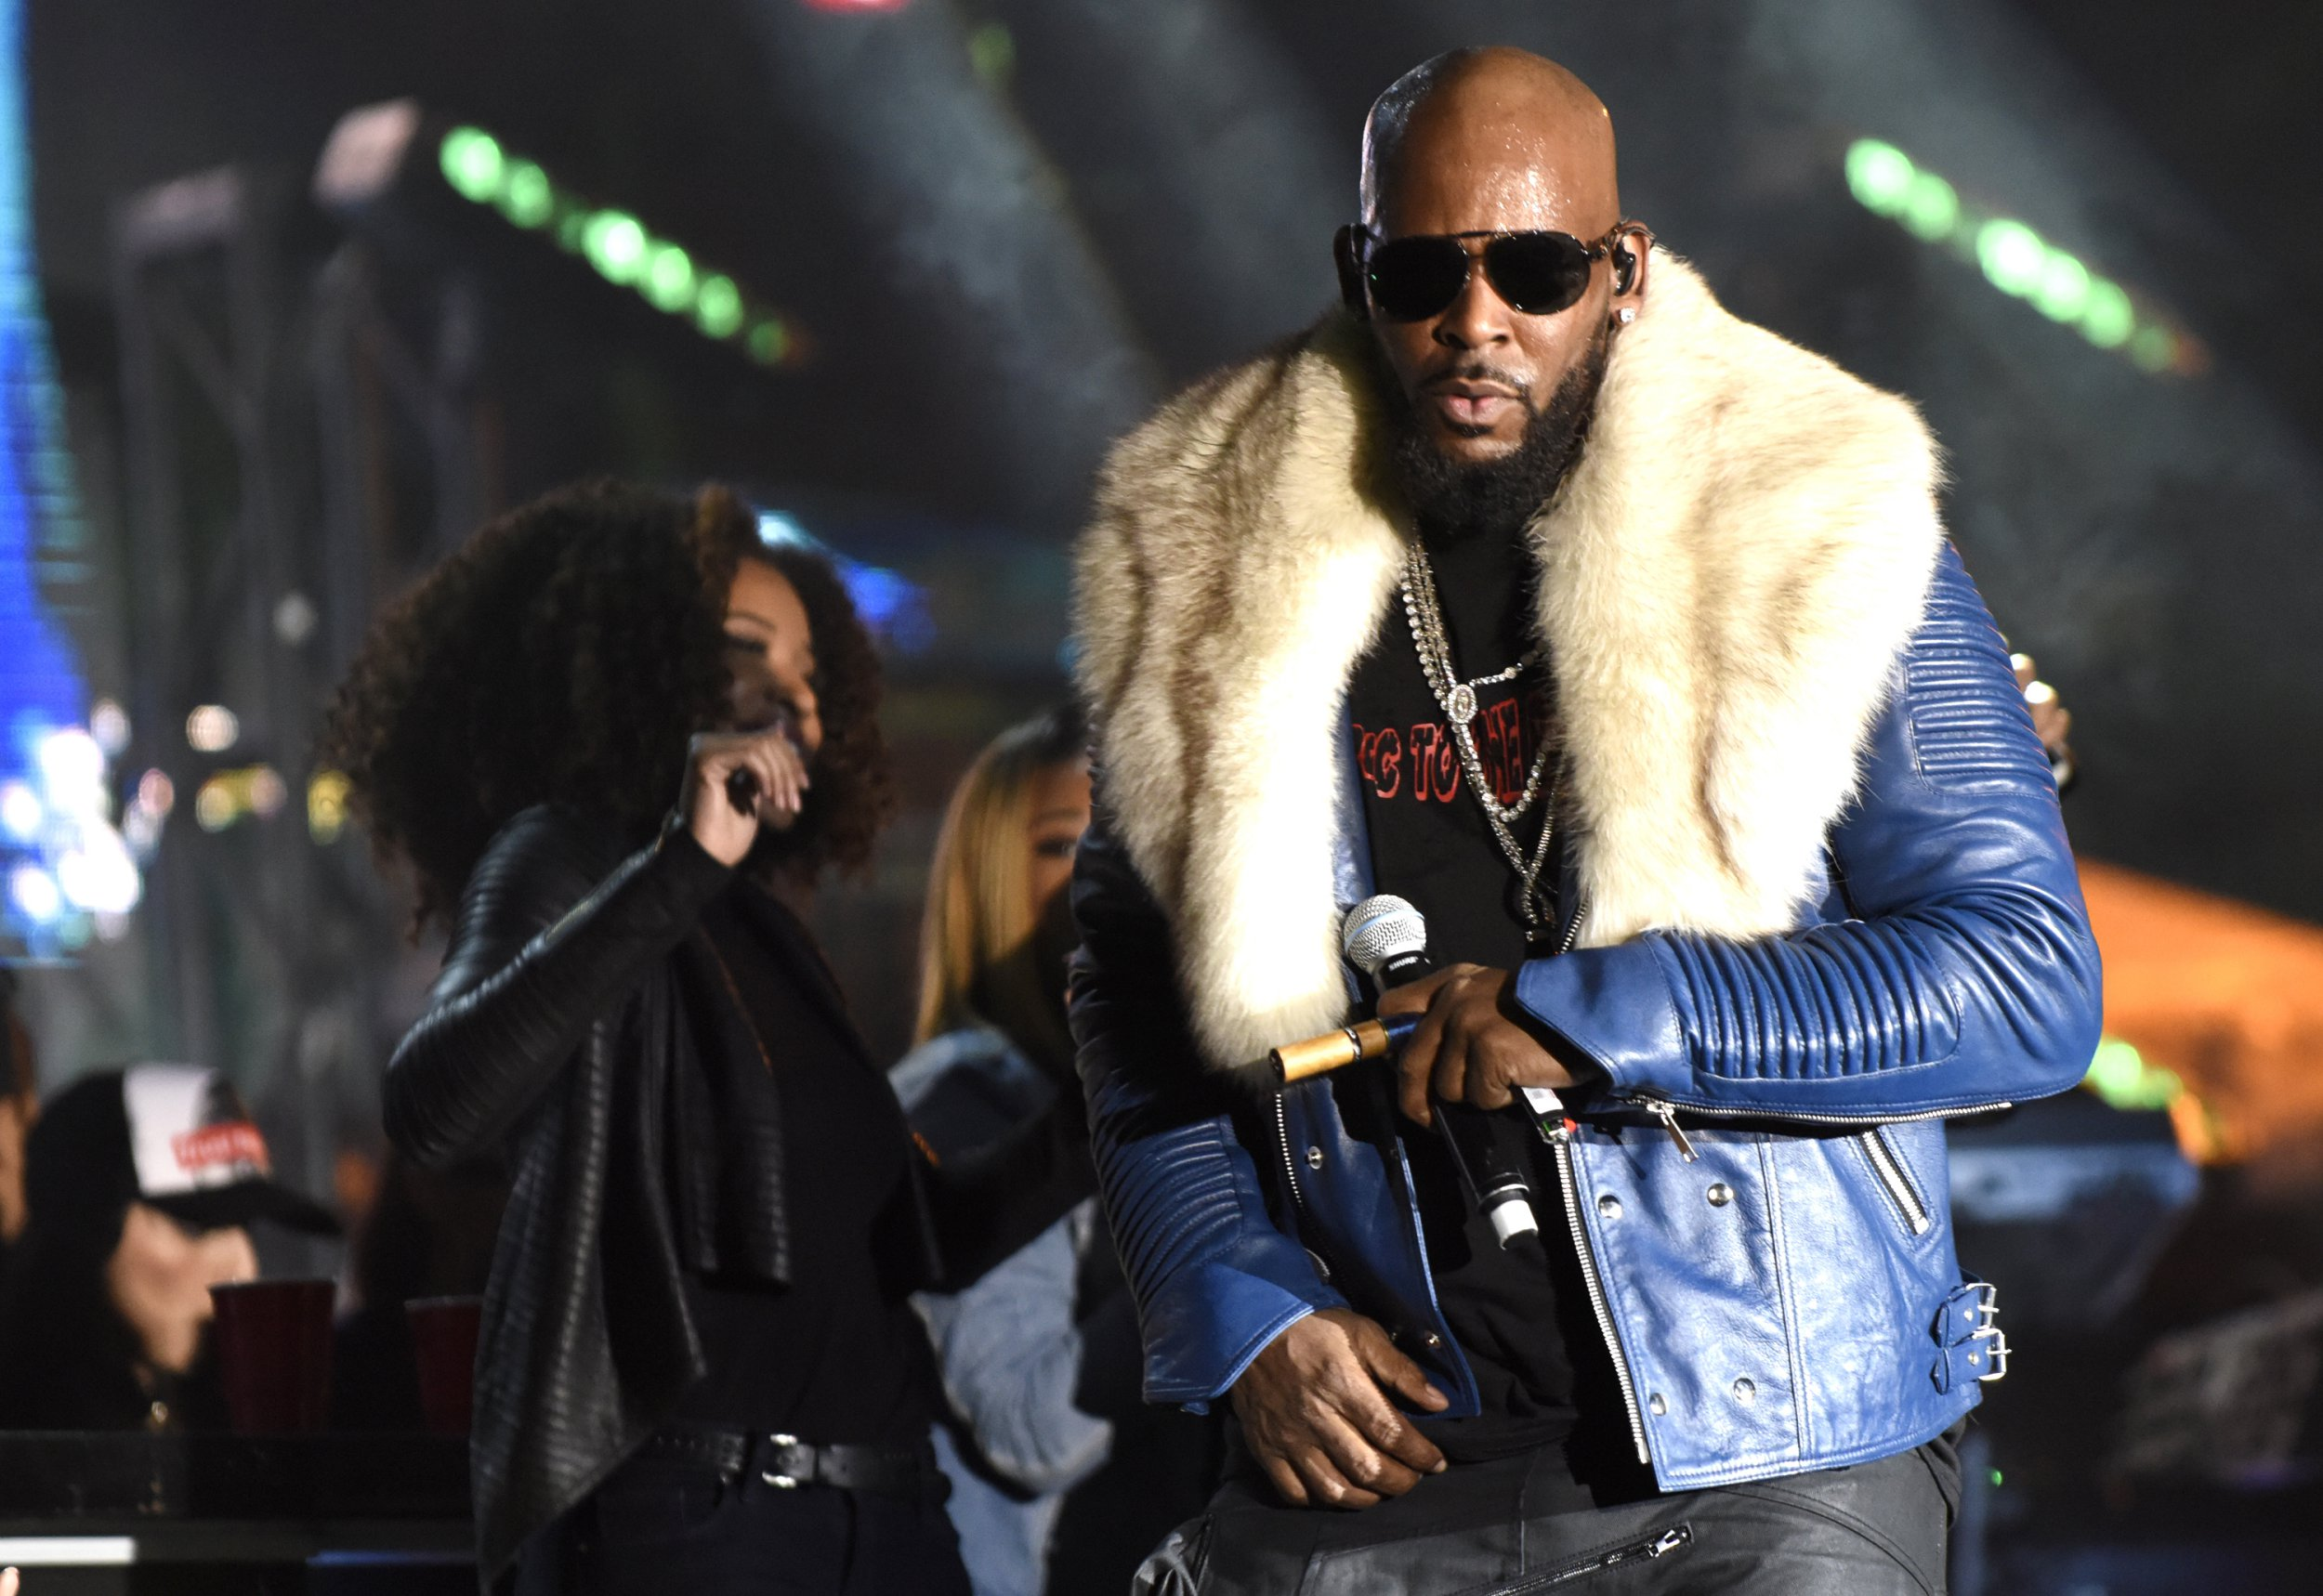 SANTA ANA, CA - FEBRUARY 18: R. Kelly performs during Soulquarius 2017 at The Observatory on February 18, 2017 in Santa Ana, California. (Photo by Tim Mosenfelder/WireImage,)